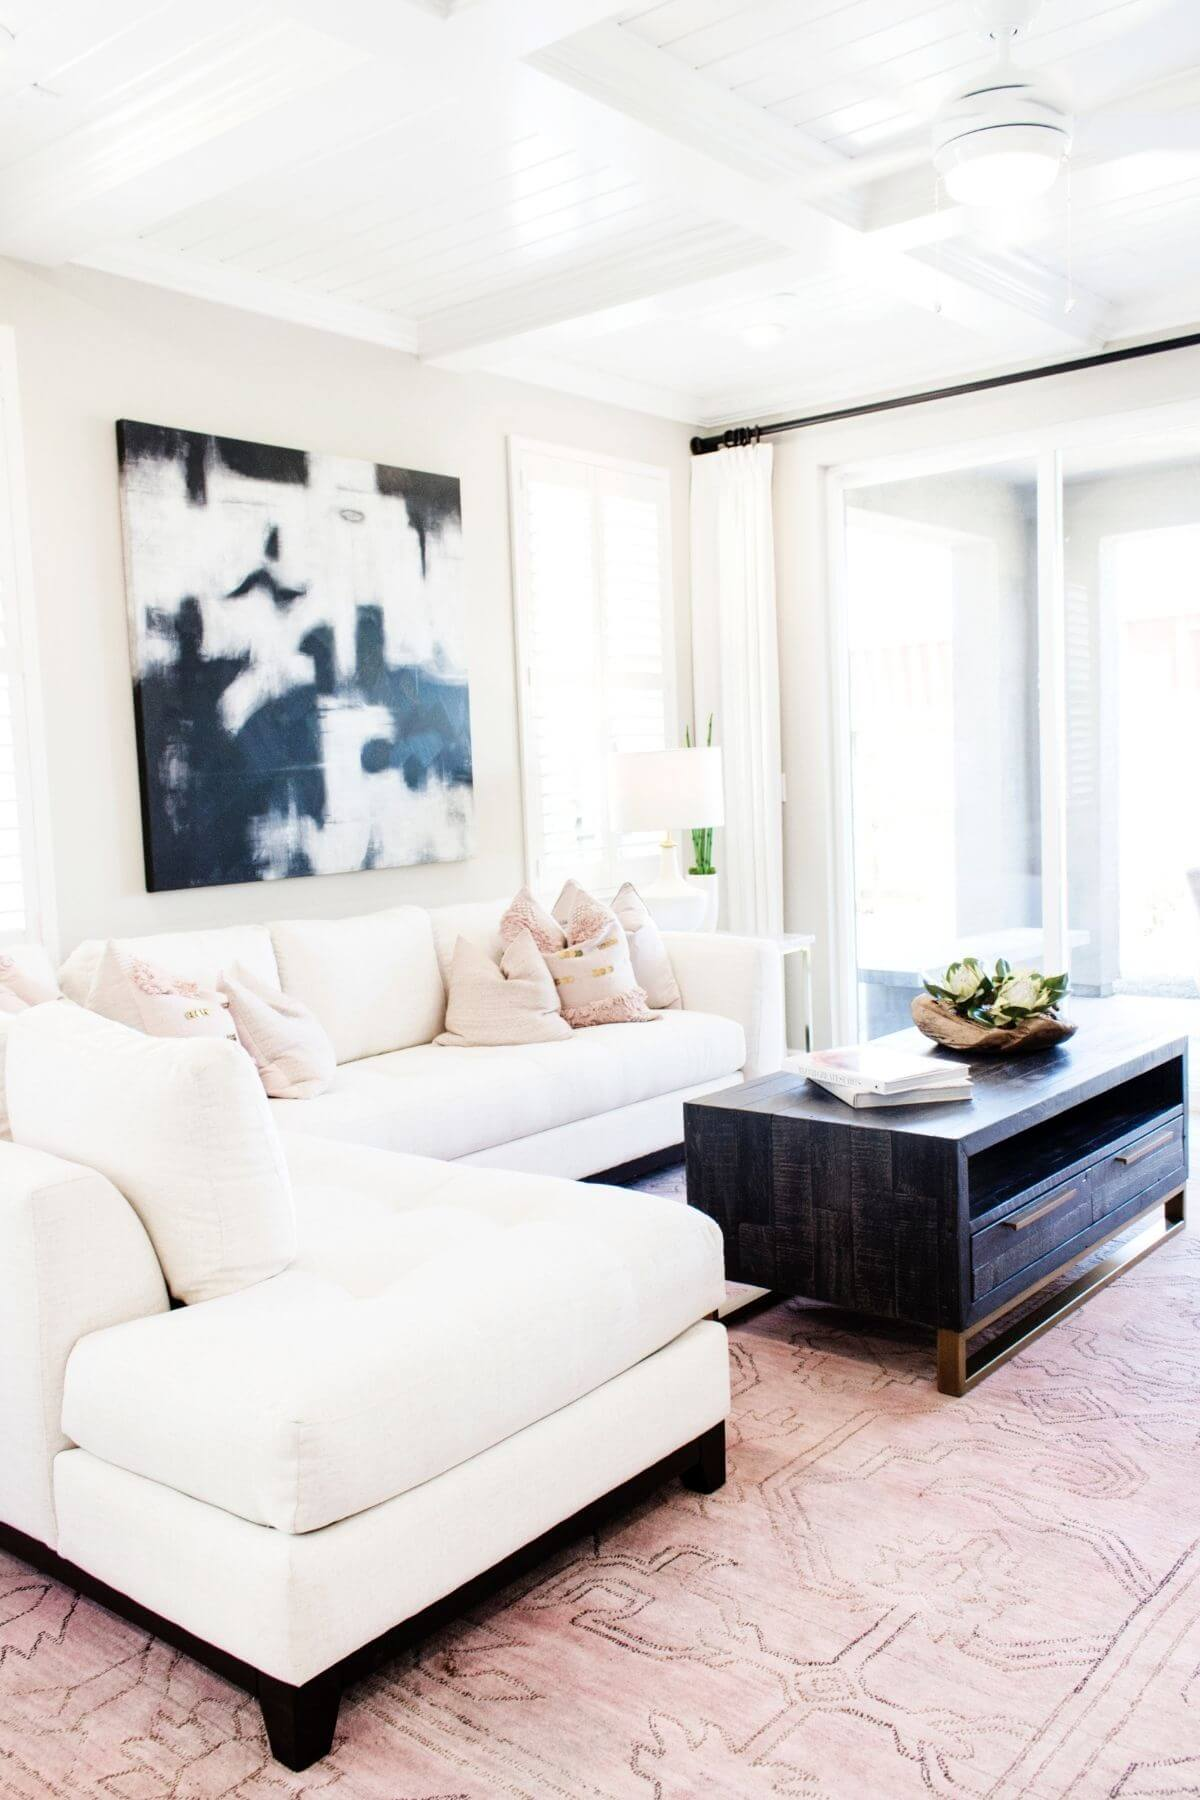 Tidy living room without clutter